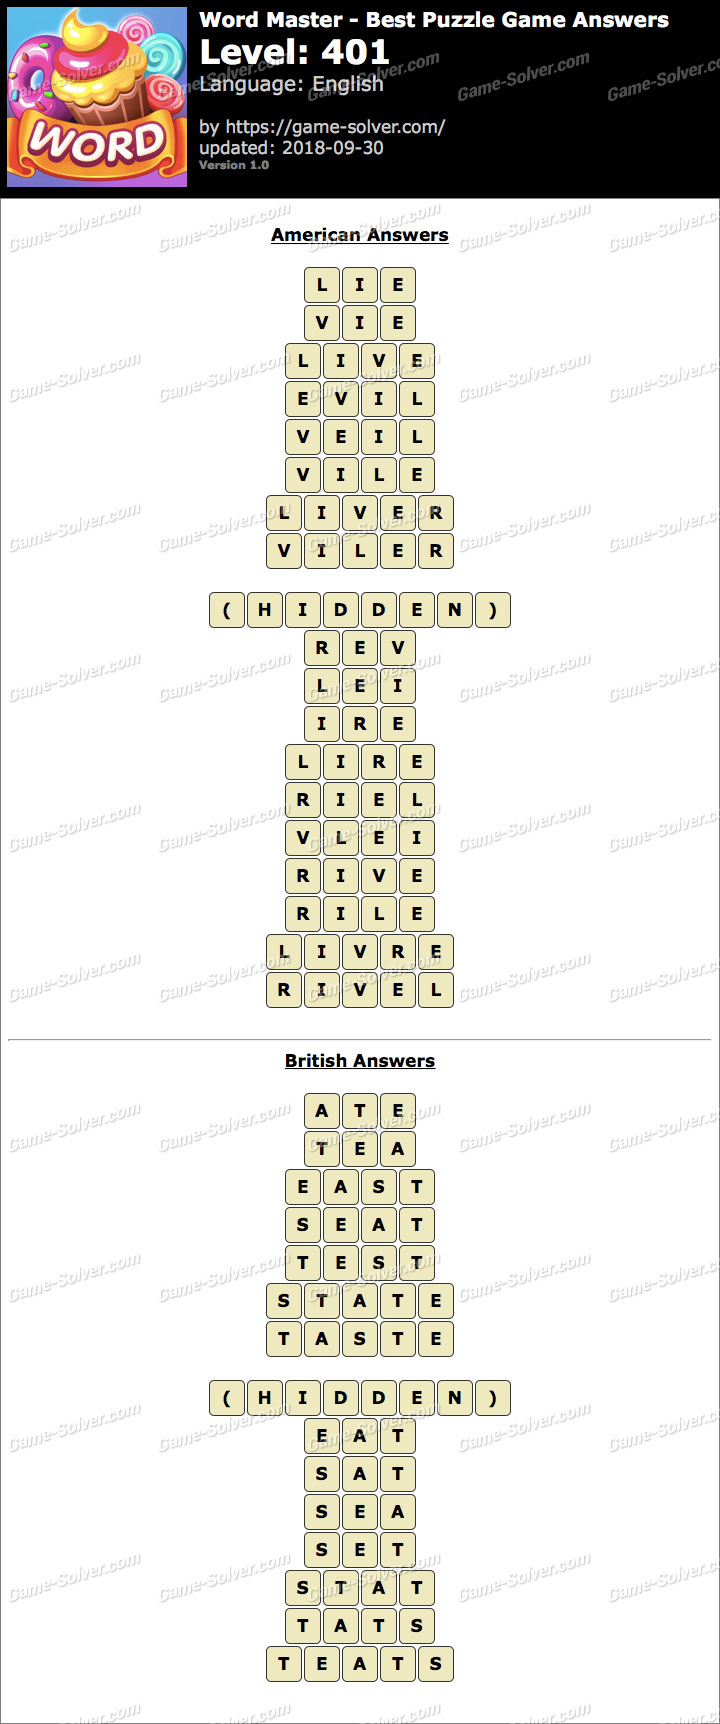 Word Master-Best Puzzle Game Level 401 Answers